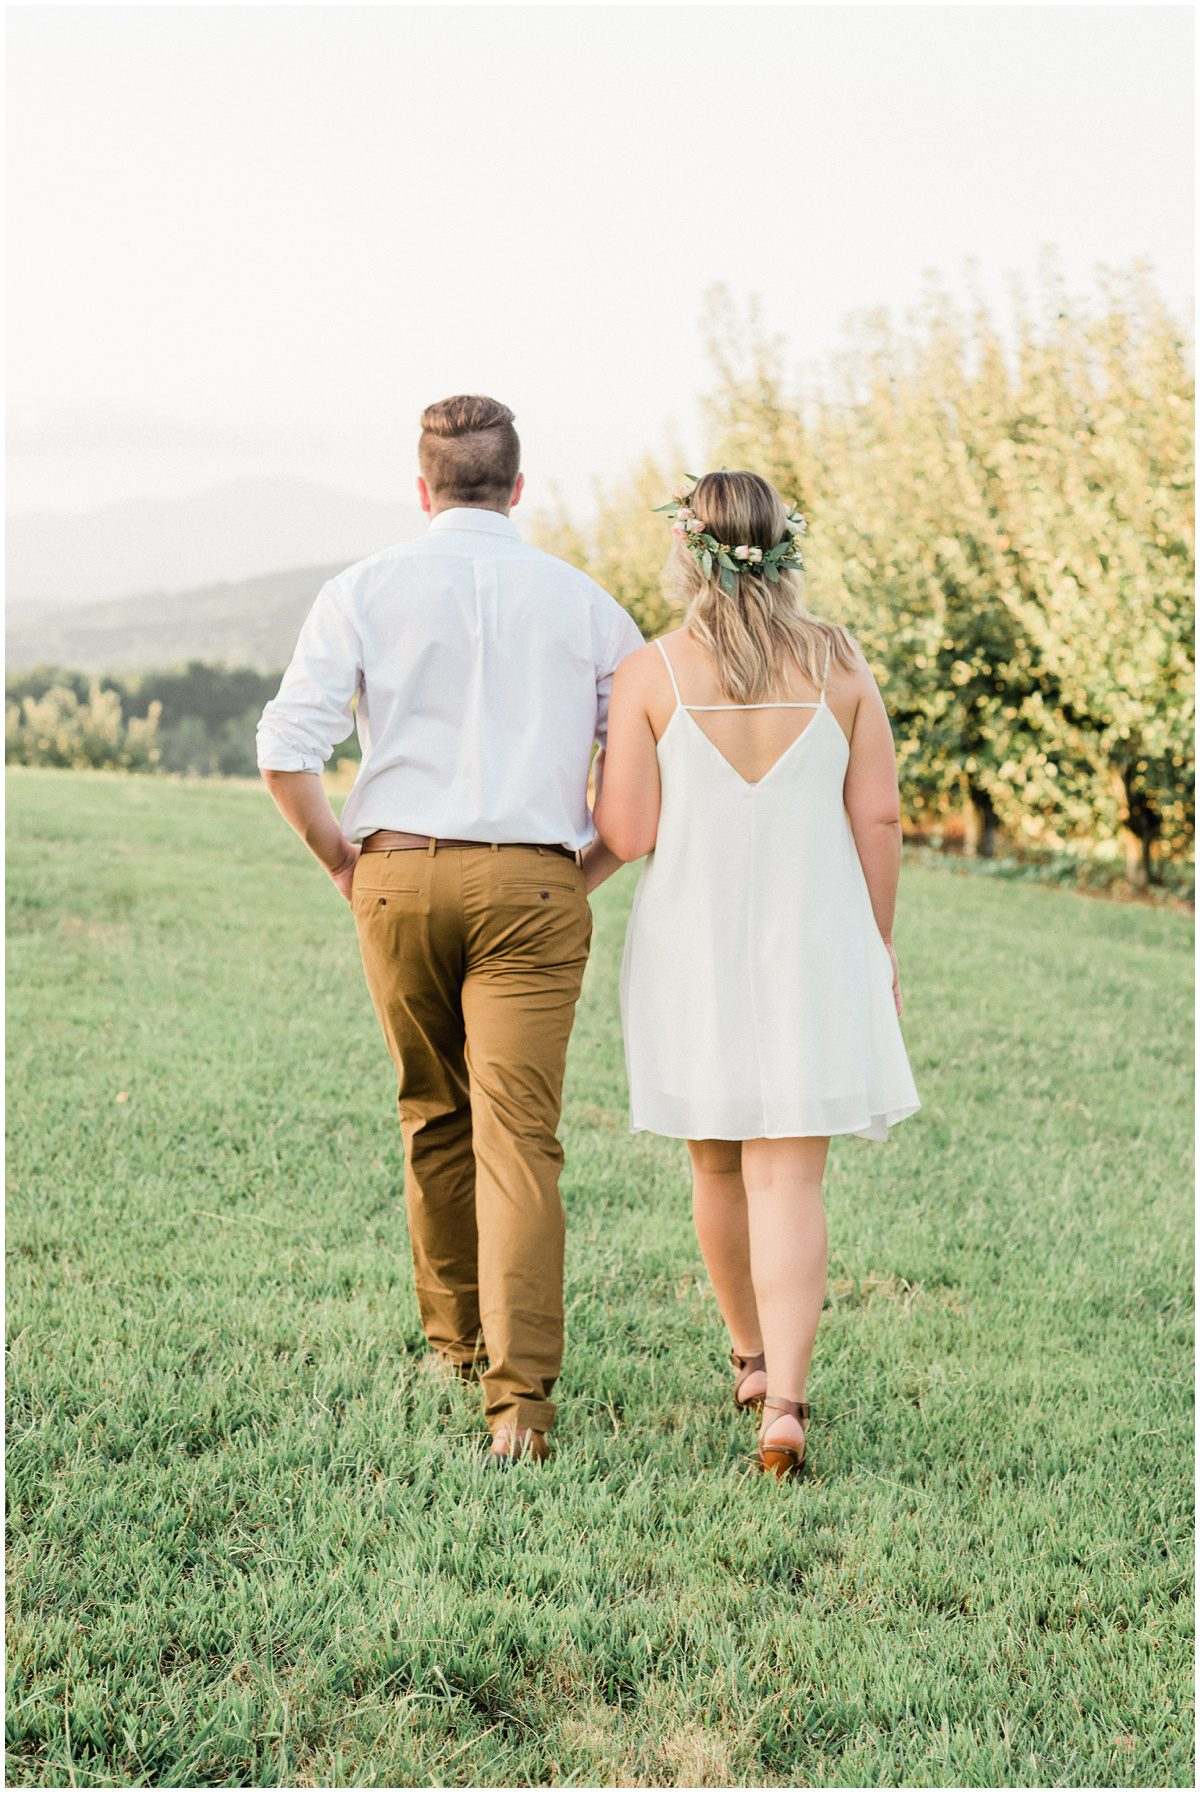 Engagement photos with flower crown